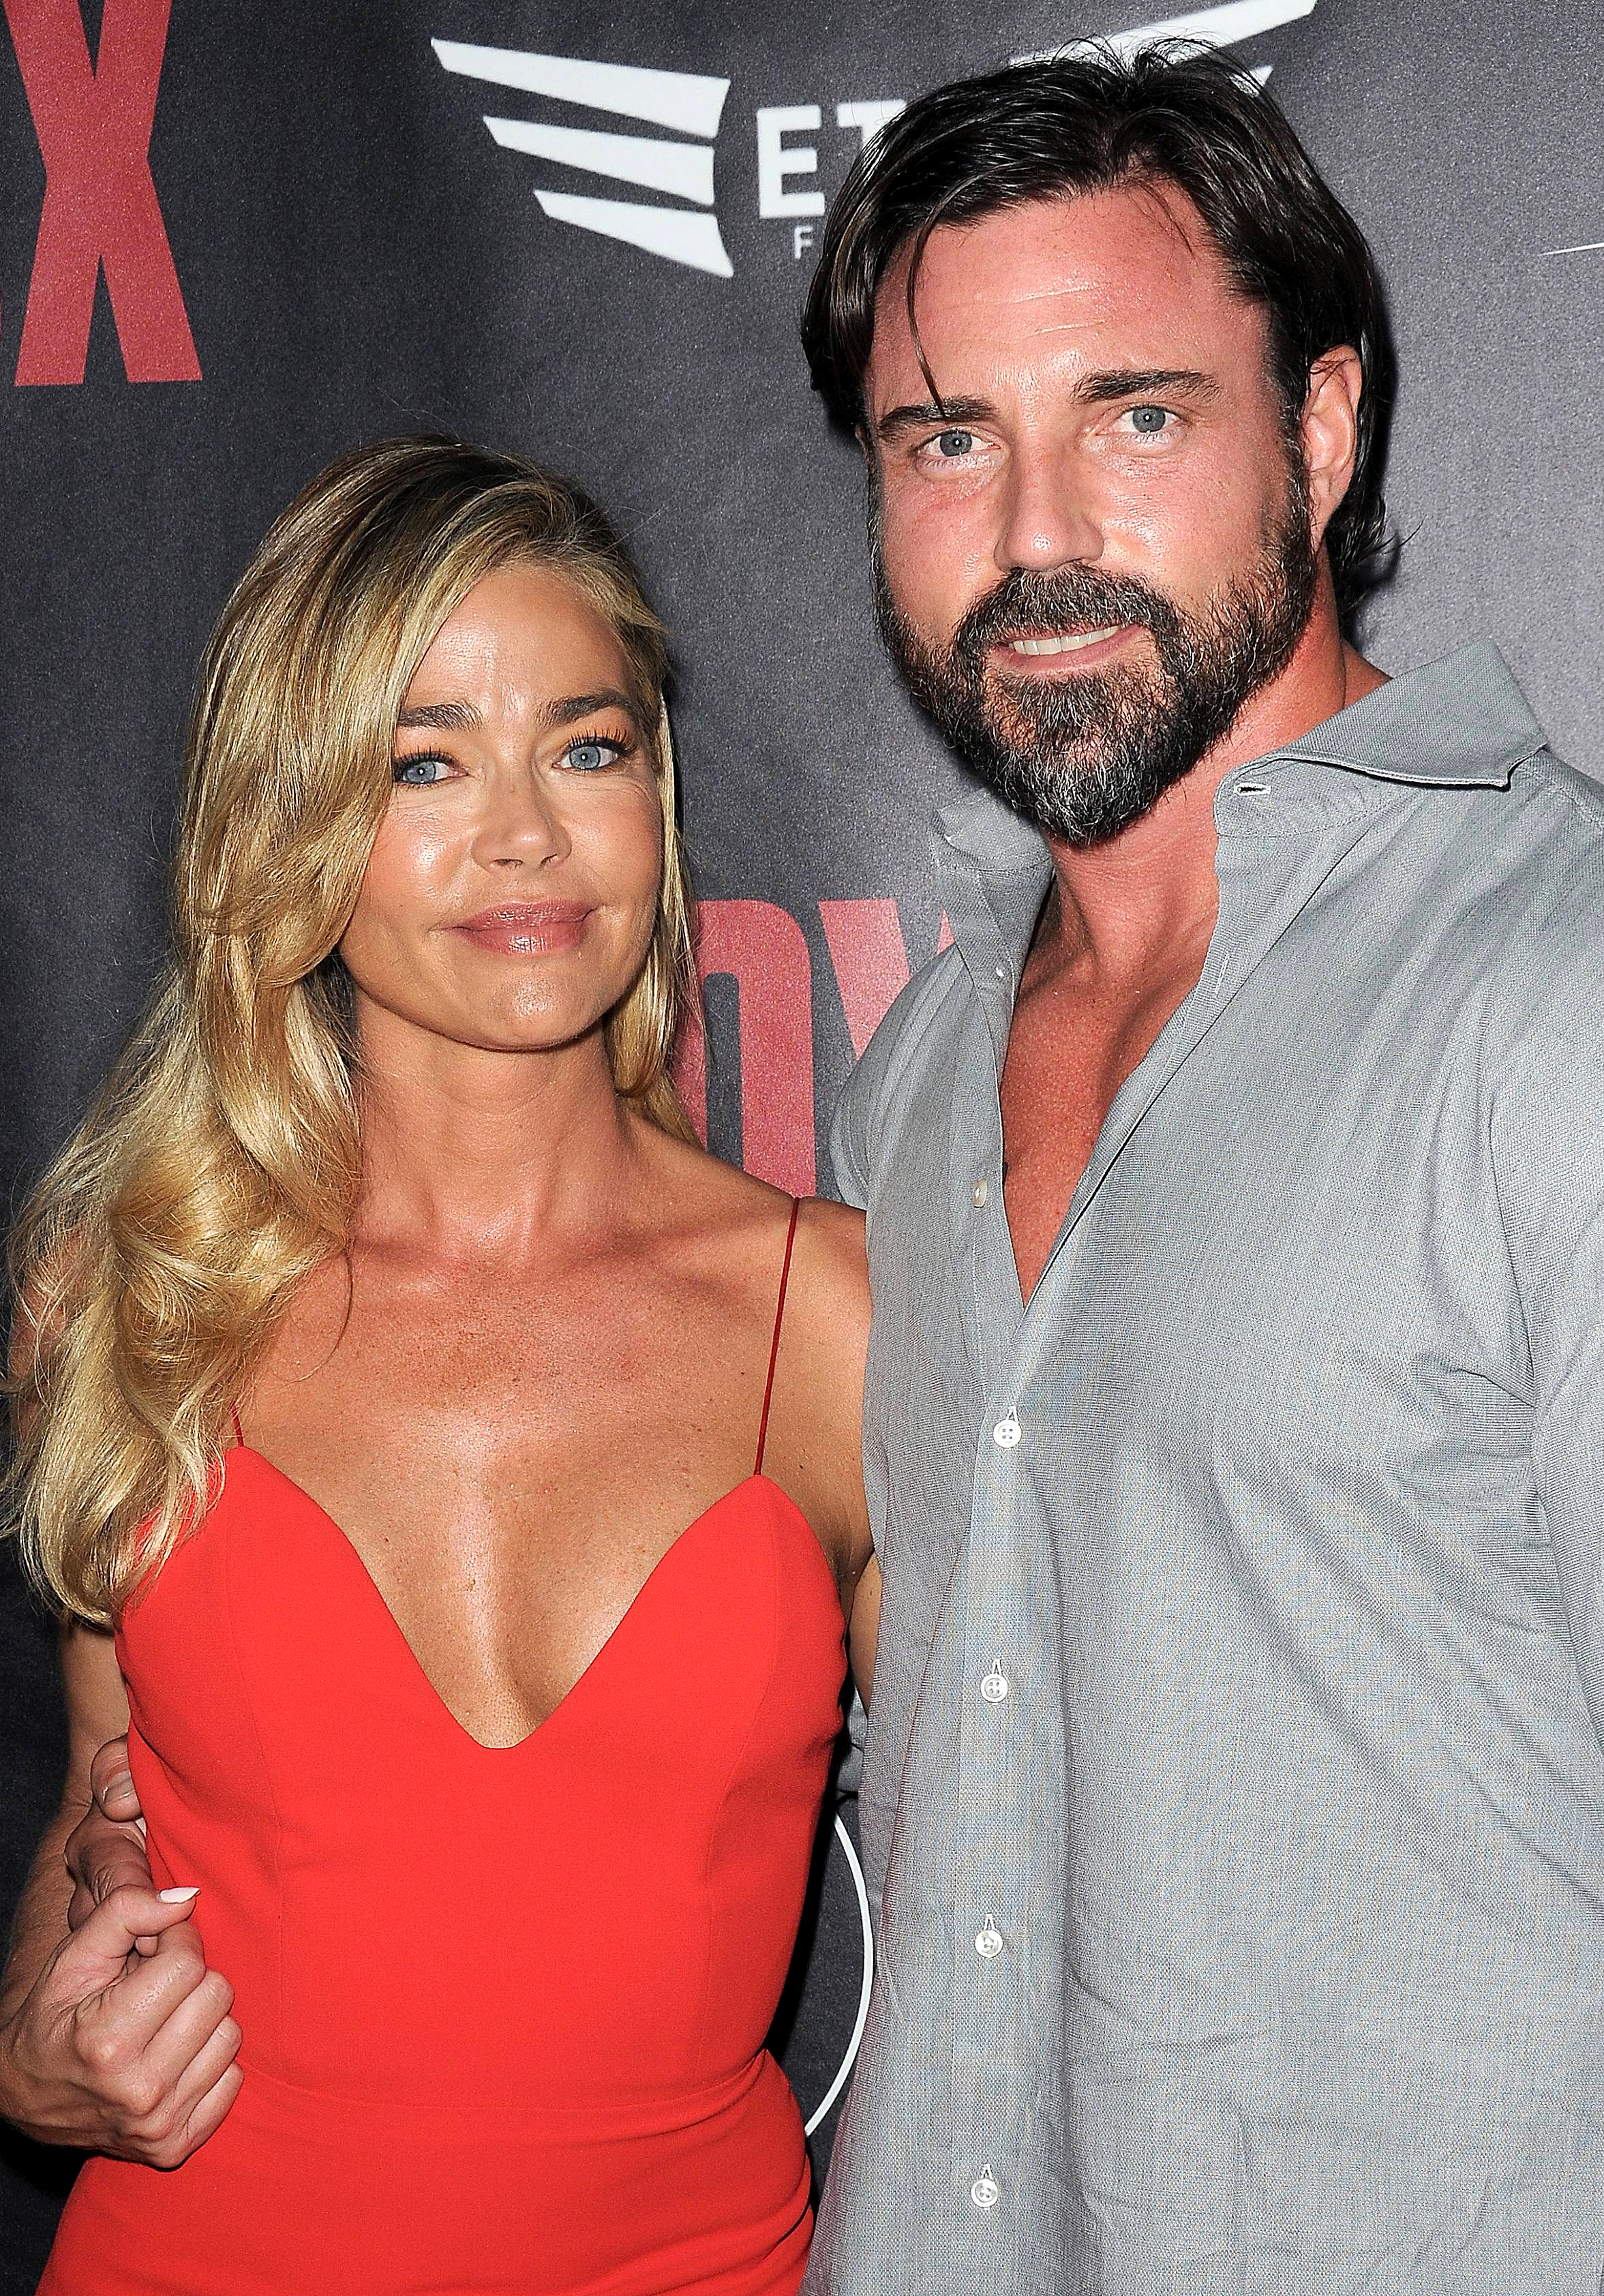 """Denise Richards Quotes About Husband Aaron Phypers - Denise revealed her first impression of her man on a March 12 episode of the show after Lisa asked if they had instant attraction. """"I thought he was cute and I wanted to f--k him,"""" she said."""